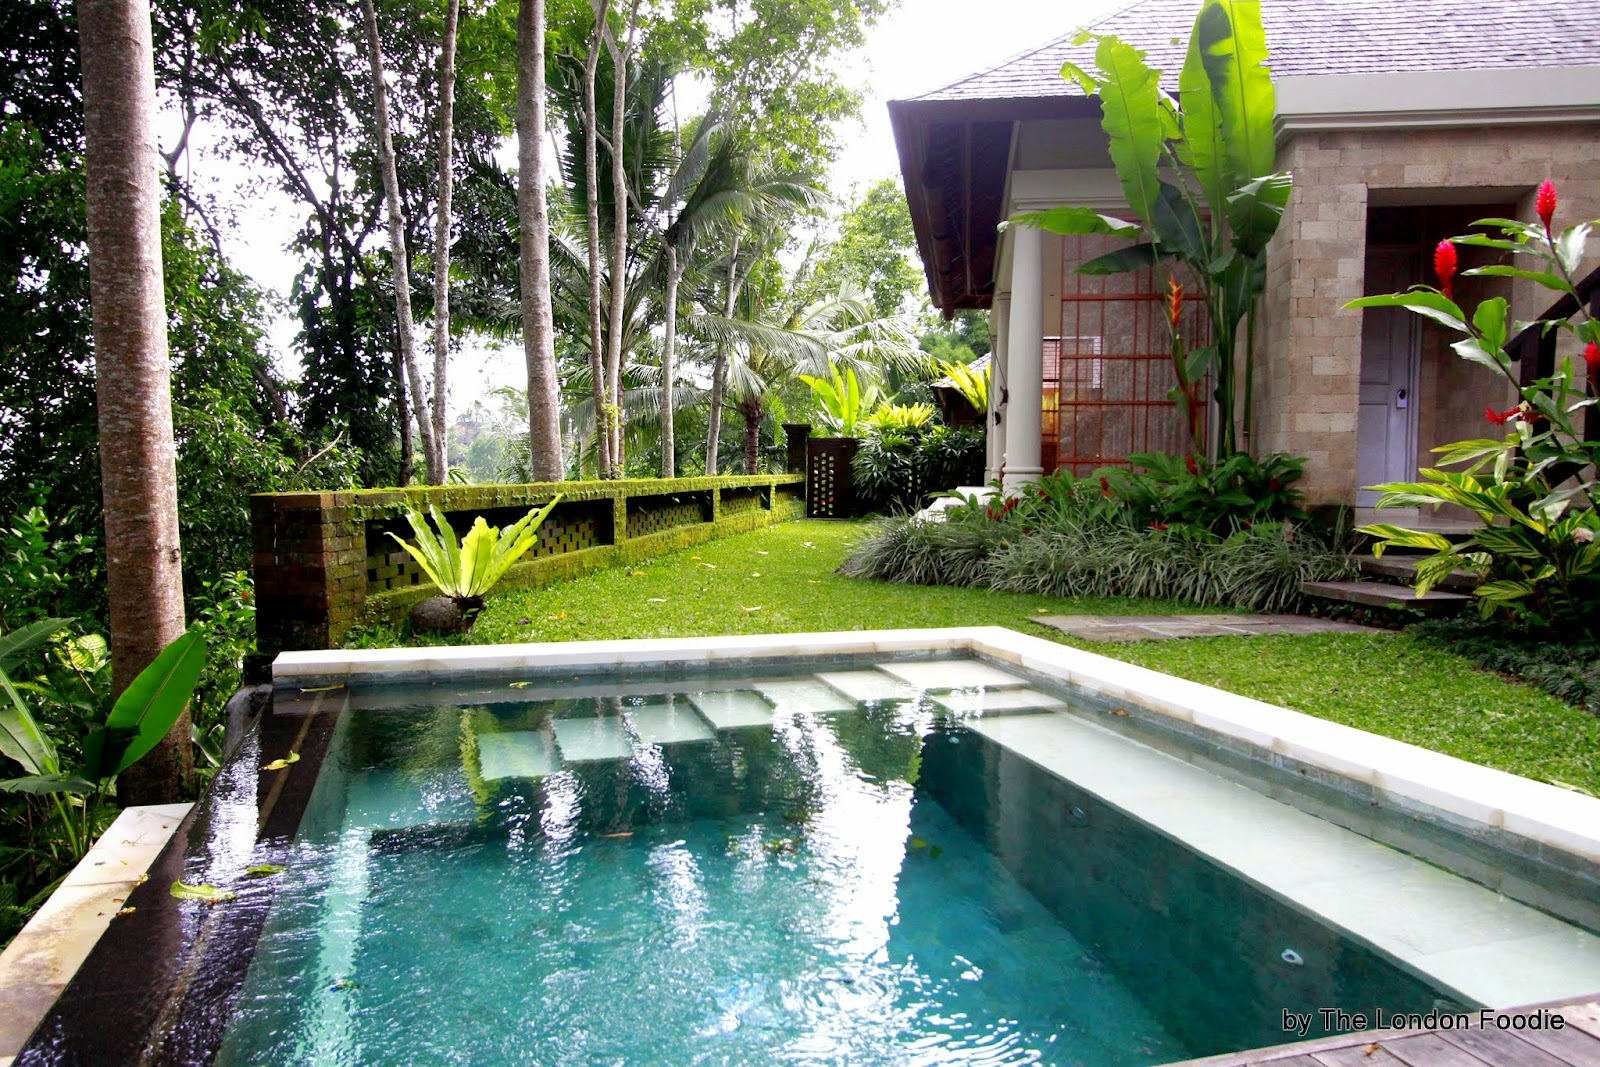 The London Foodie The London Foodie Goes To Bali Ubud Part I